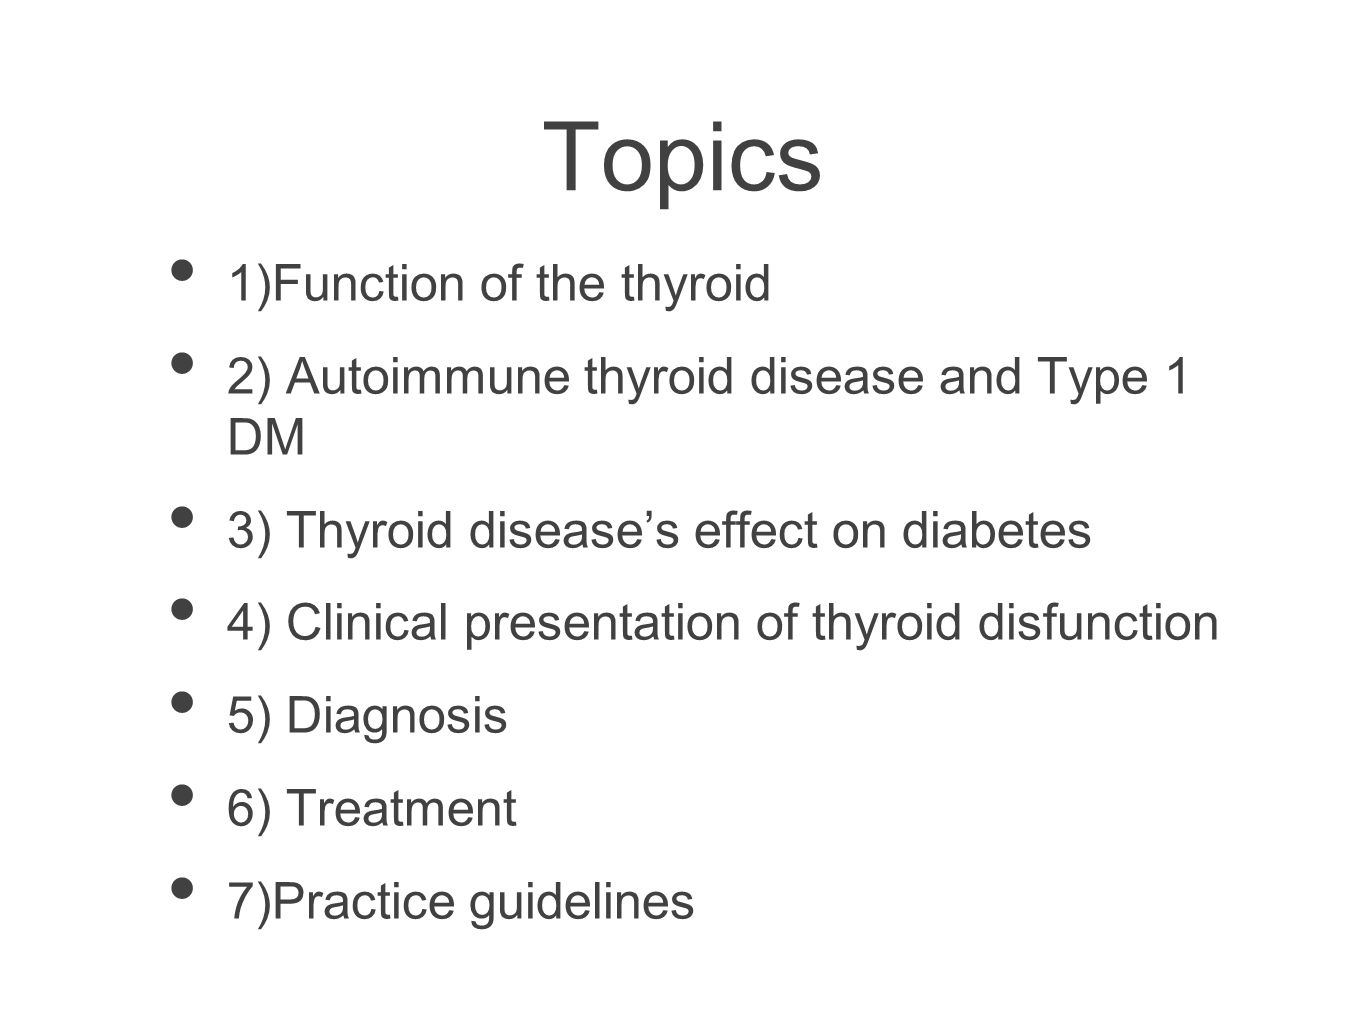 Testing Difficulties Thyroid function tests are necessary, but can be misleading Non-thyroidal illness refers to any medical problem causing a temporary change in thyroid function not related to true thyroid disease